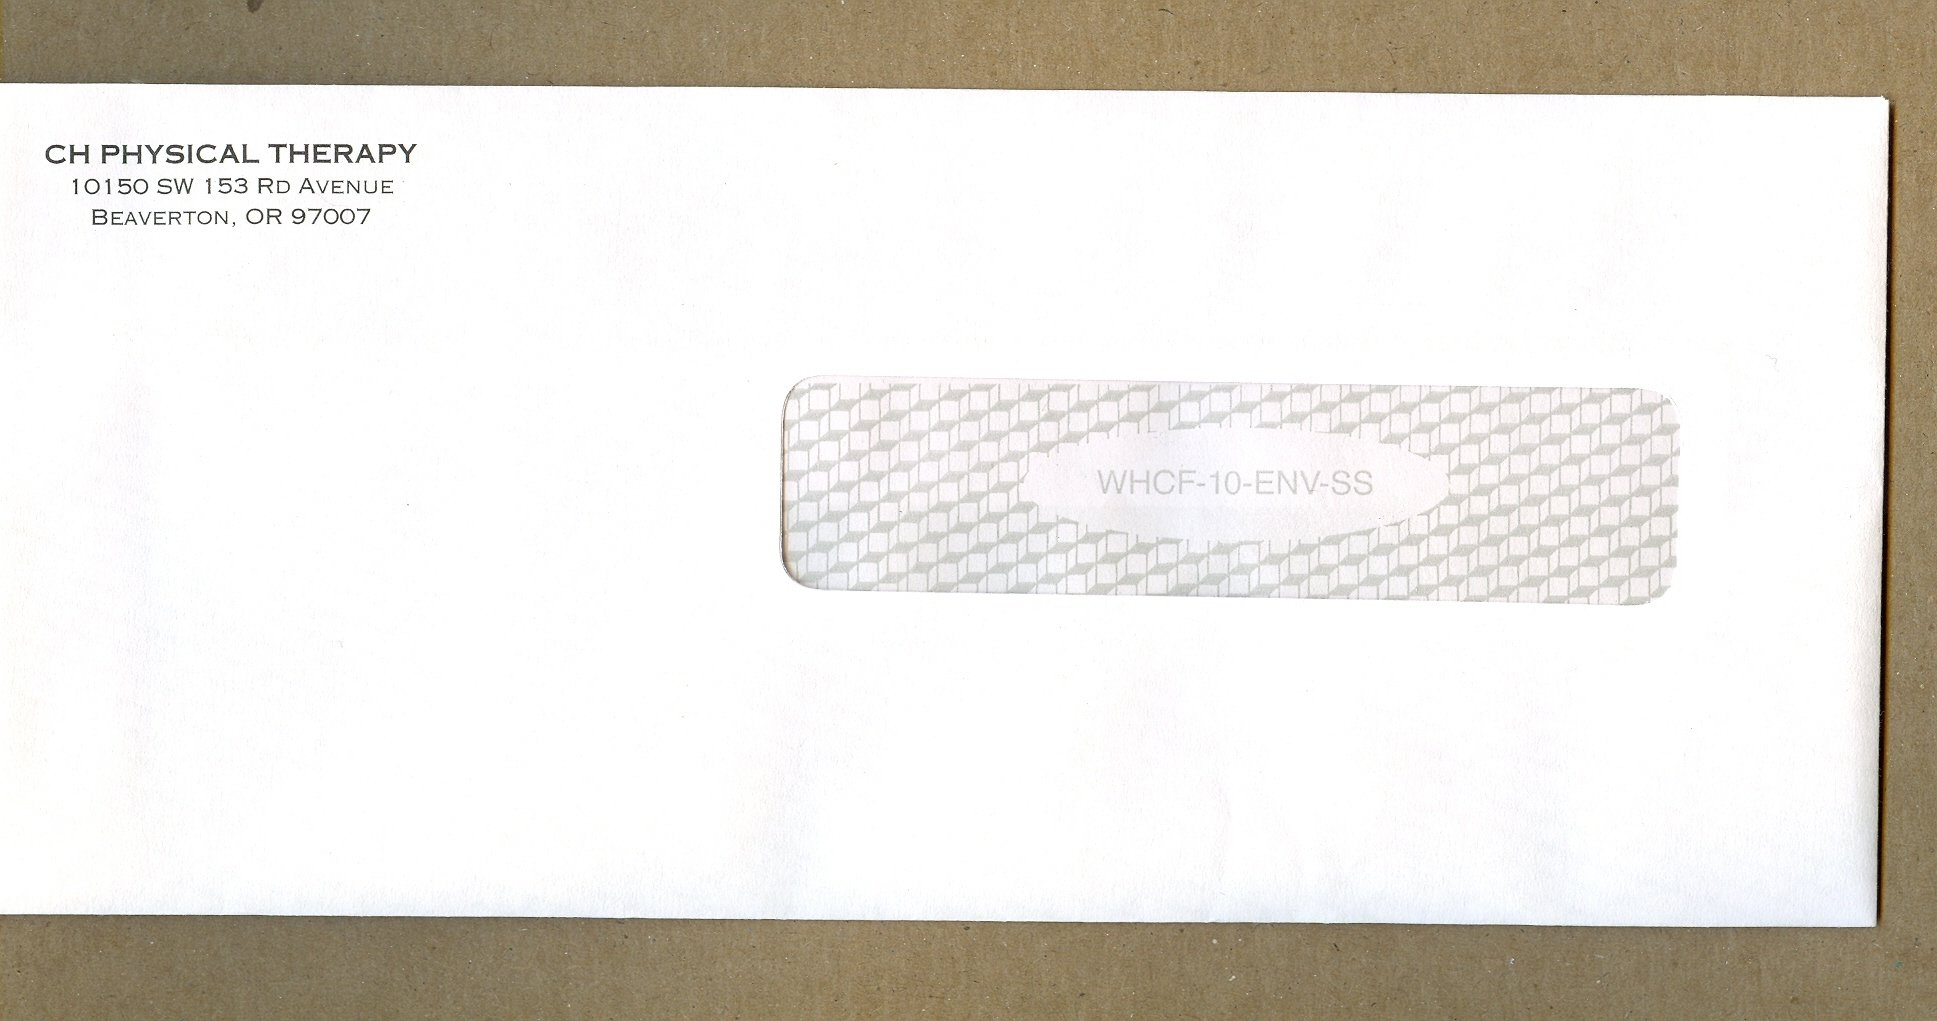 1,000 Customize Envelopes for the CMS 1500 Claim Forms... Imprinted with your return address!